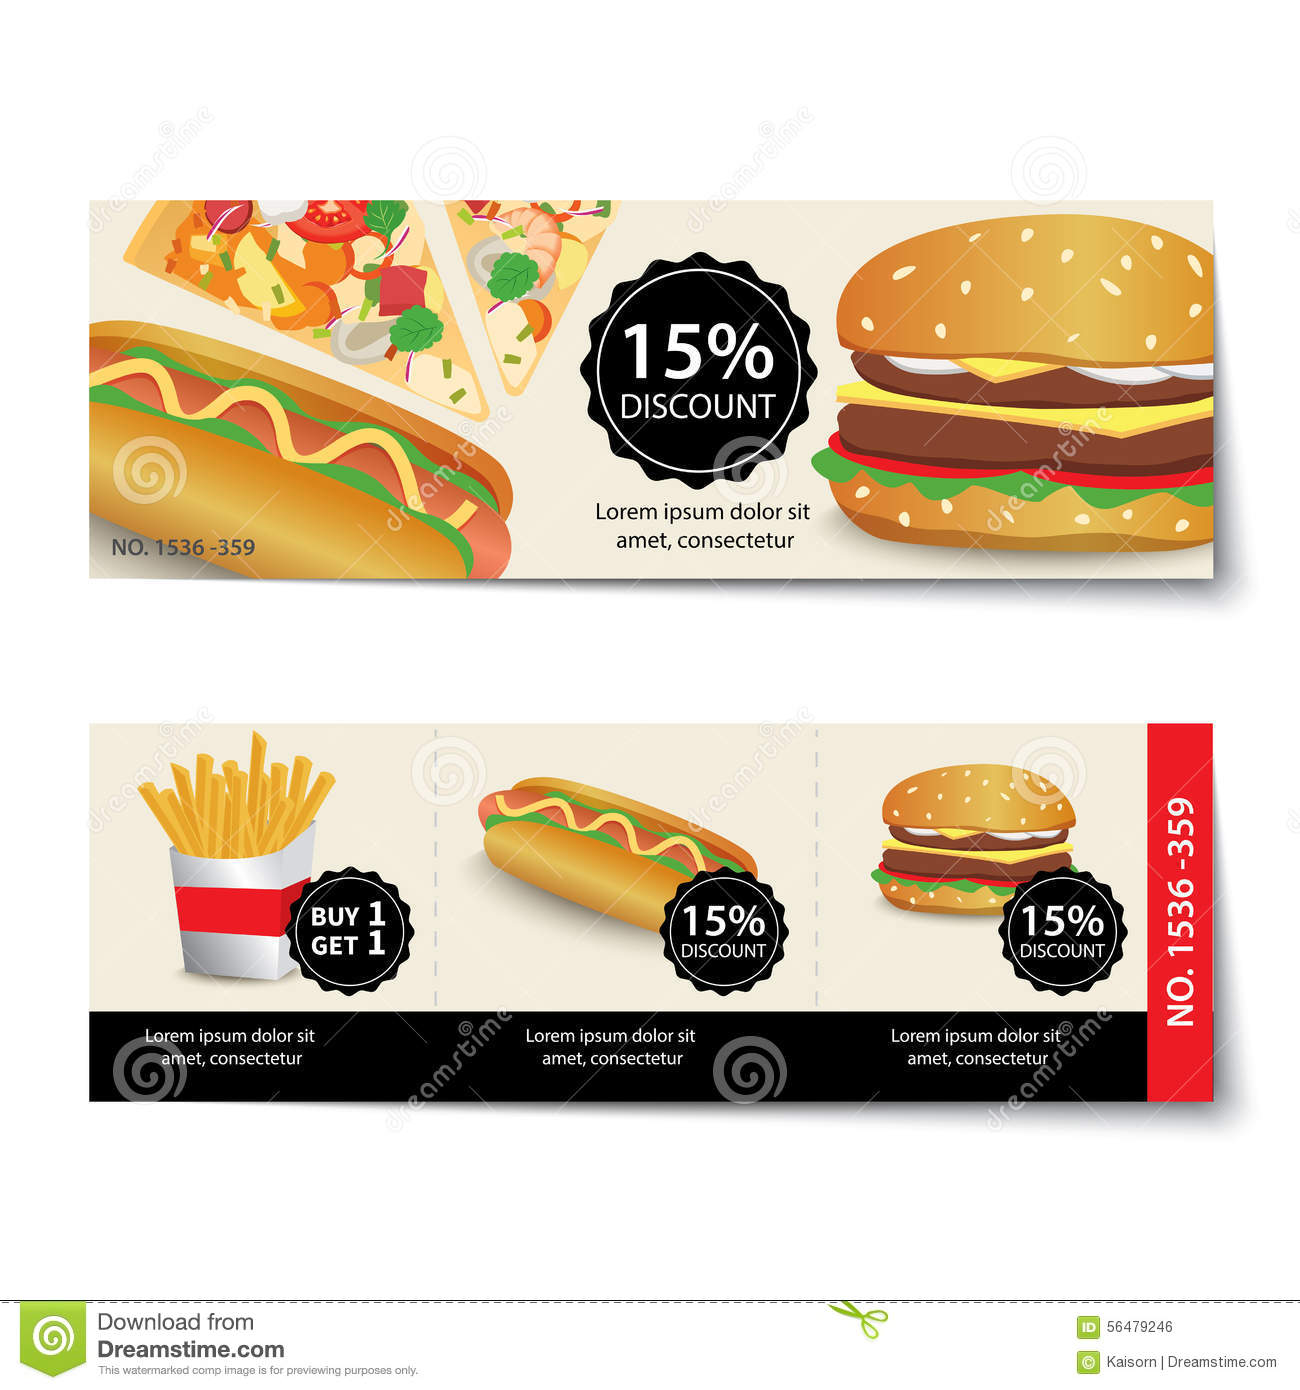 fast food coupon discount template design stock vector image 56479246. Black Bedroom Furniture Sets. Home Design Ideas